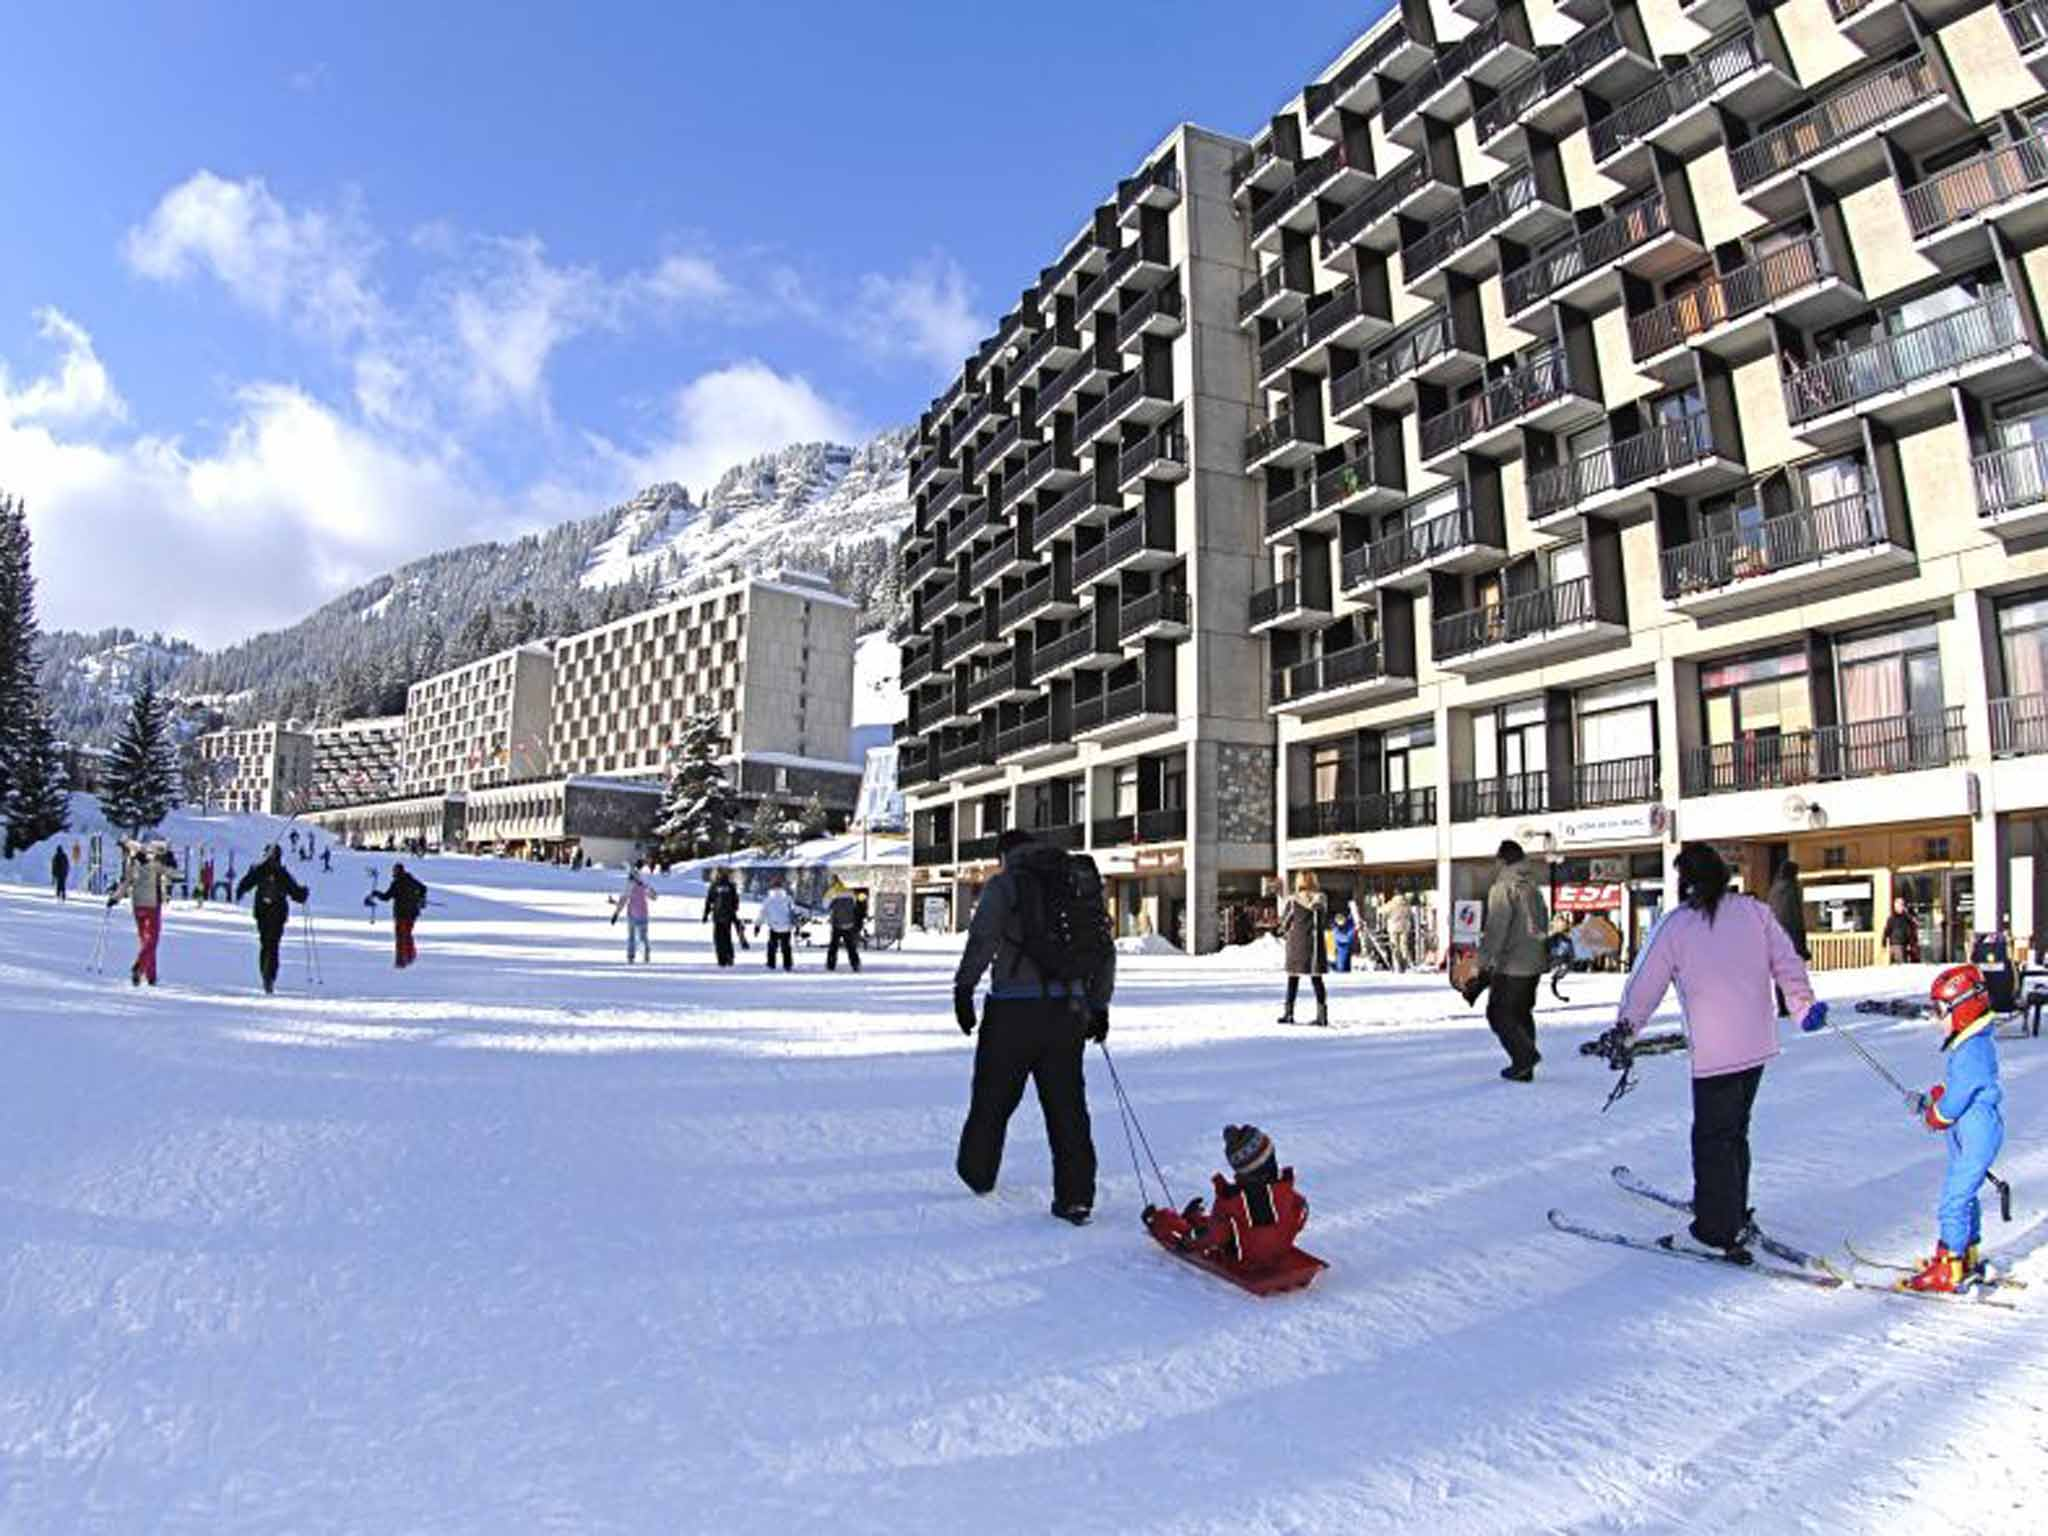 skiing at flaine: the revitalisation of a french ski resort | the